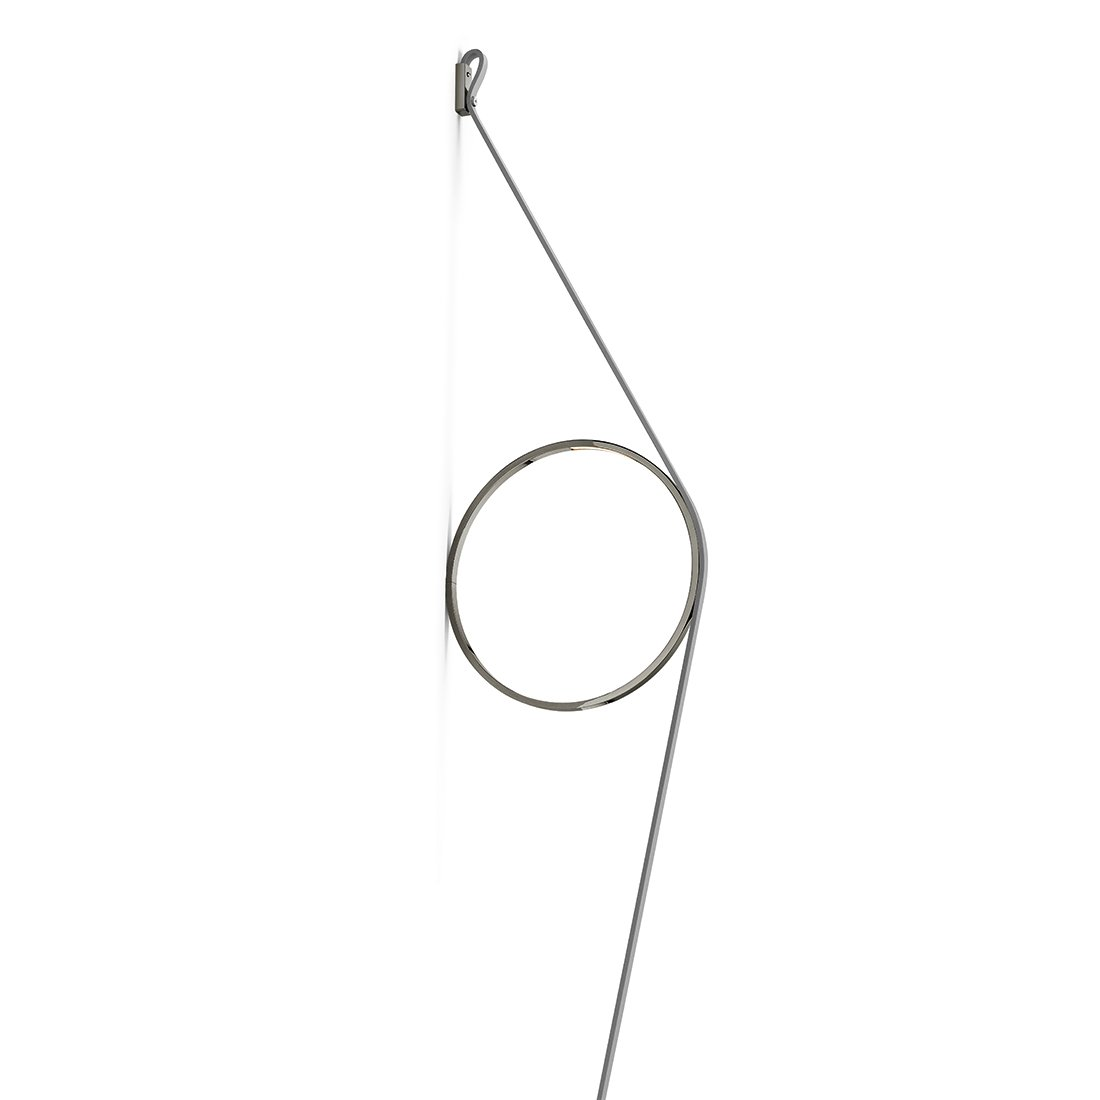 FLOS WireRing Wandlamp Grijze Kabel - Antraciete Ring